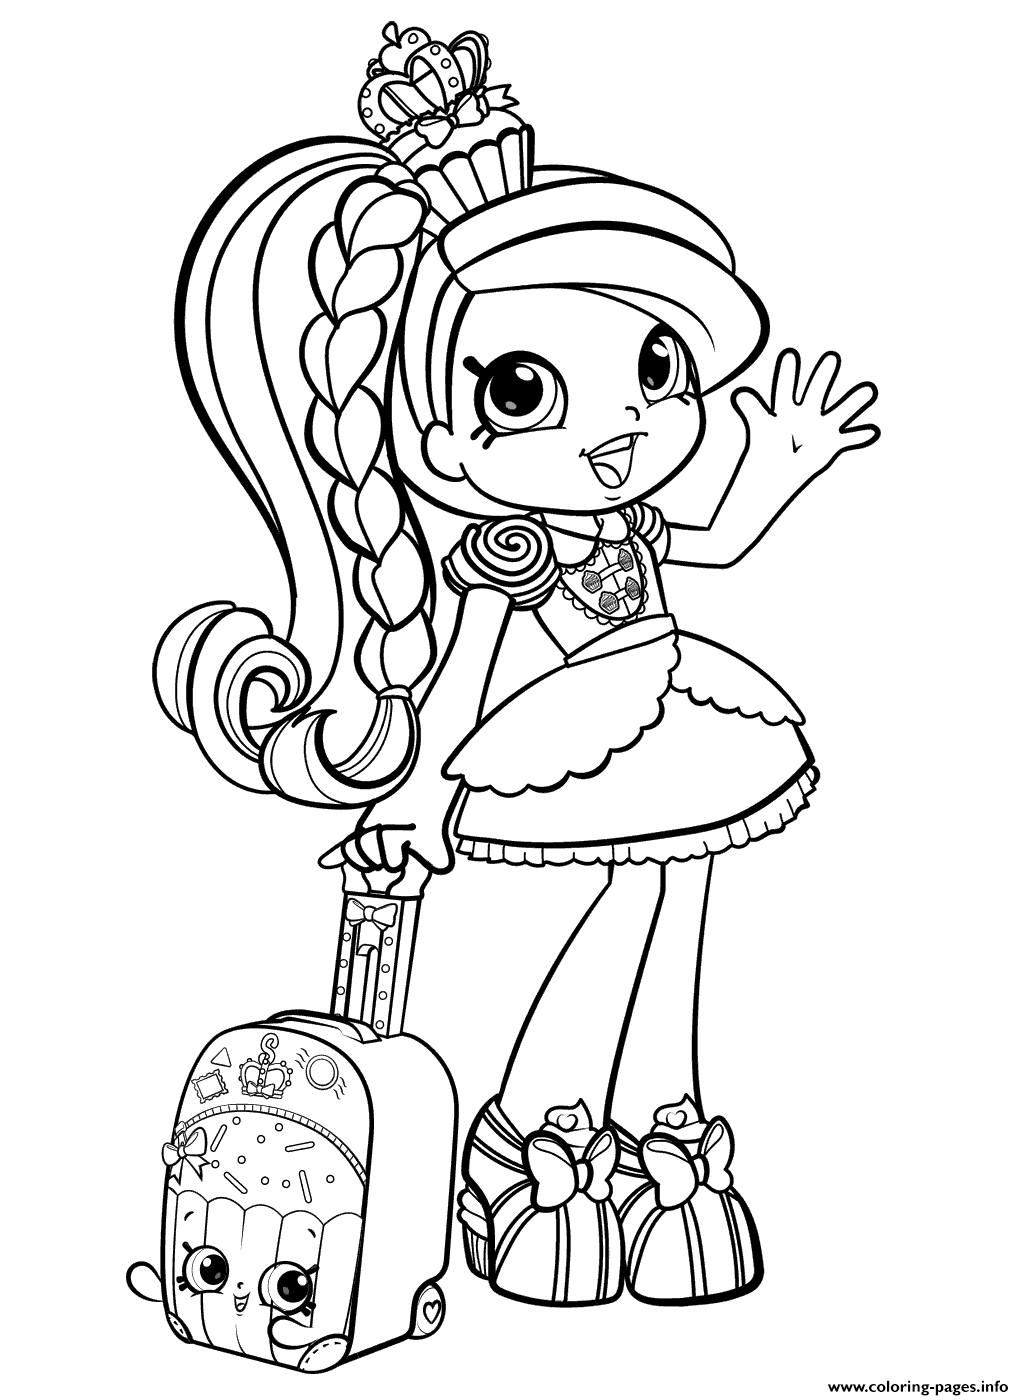 Shopkins Girl Coloring Pages : shopkins, coloring, pages, Shopkins, World, Vacation, Season, Coloring, Pages, Printable